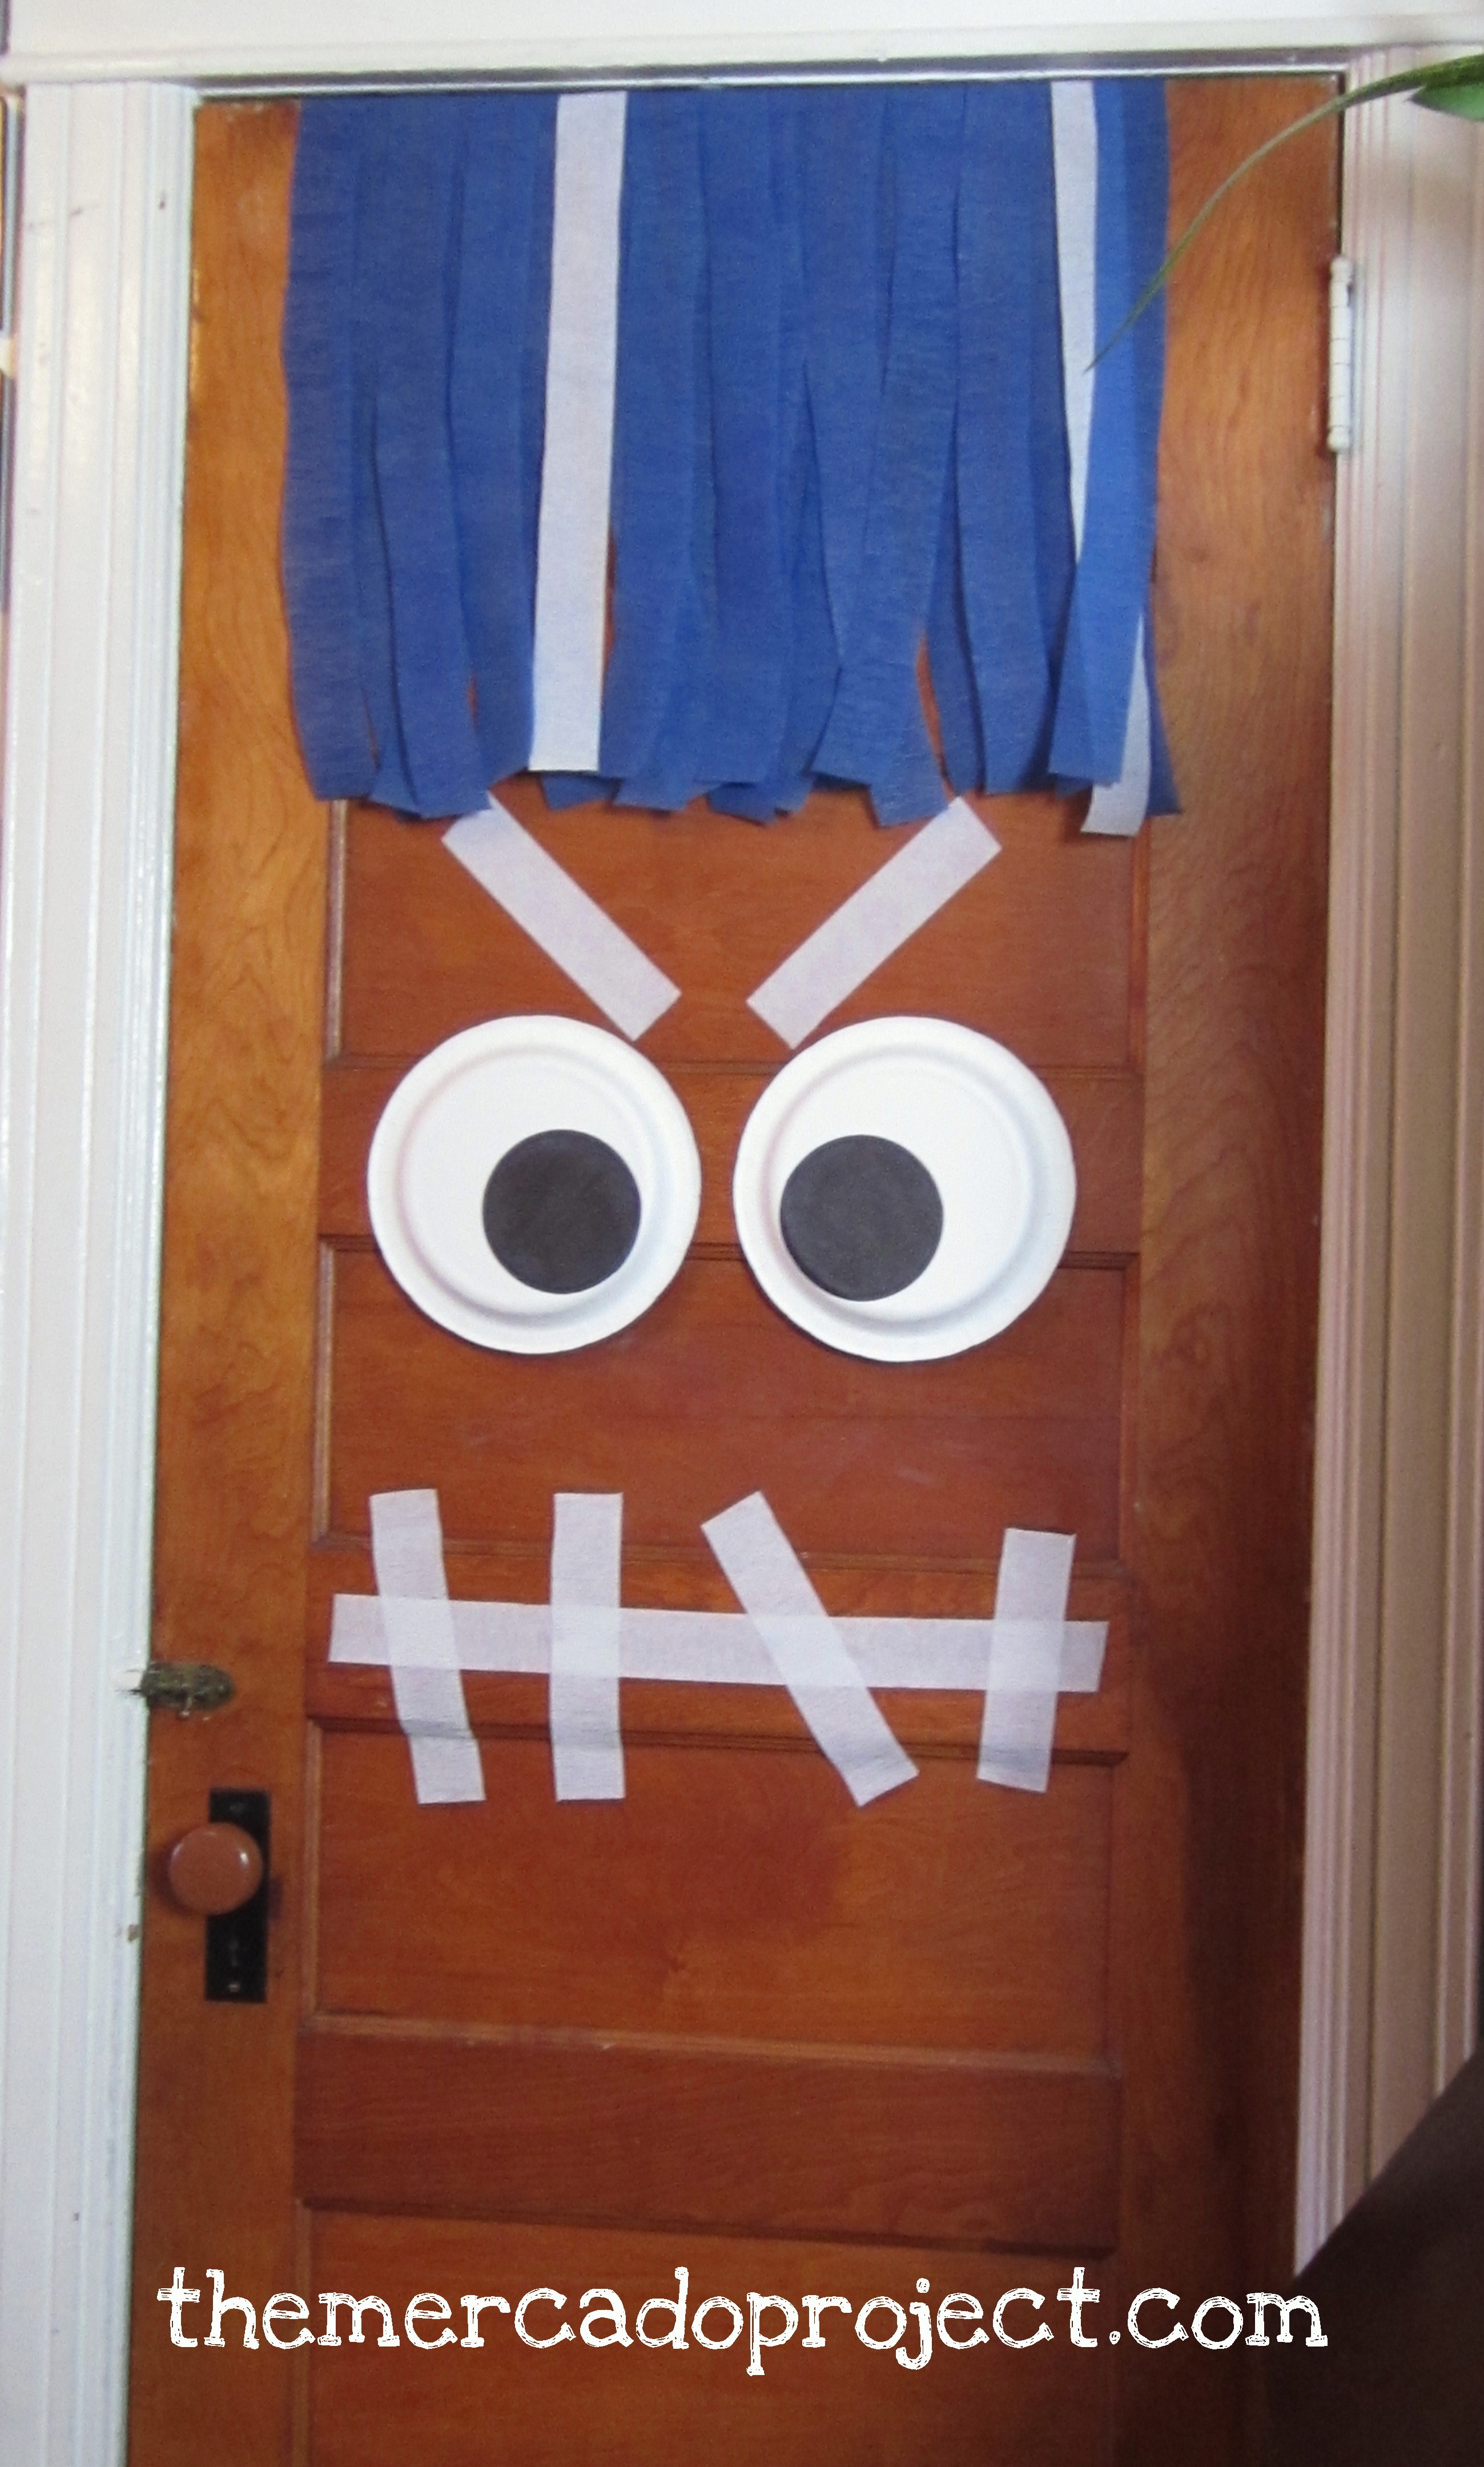 i made our own door monster